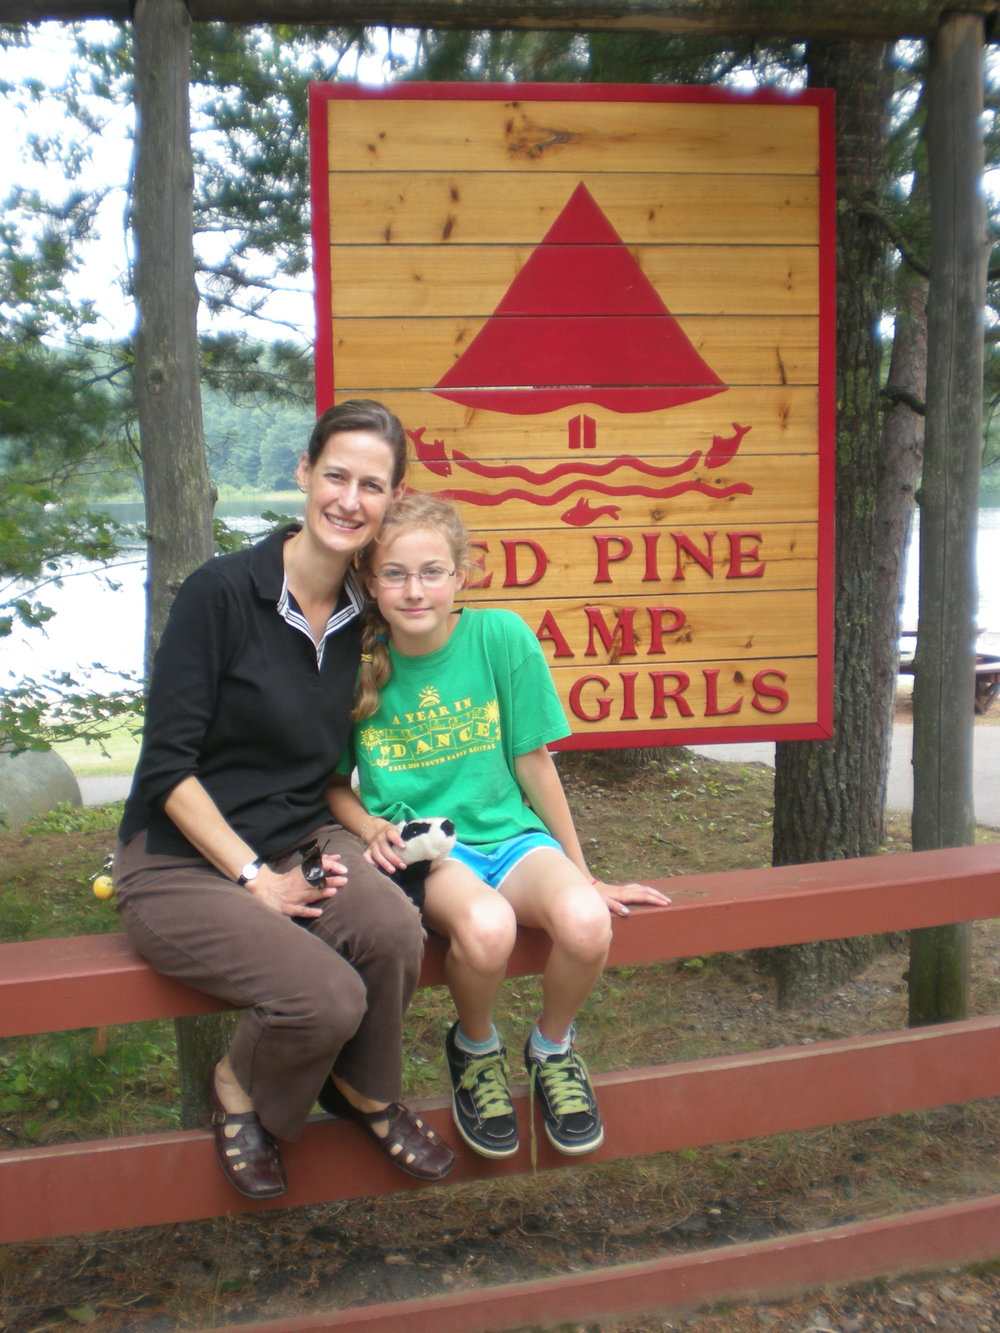 Red Pine Camp with my daughter